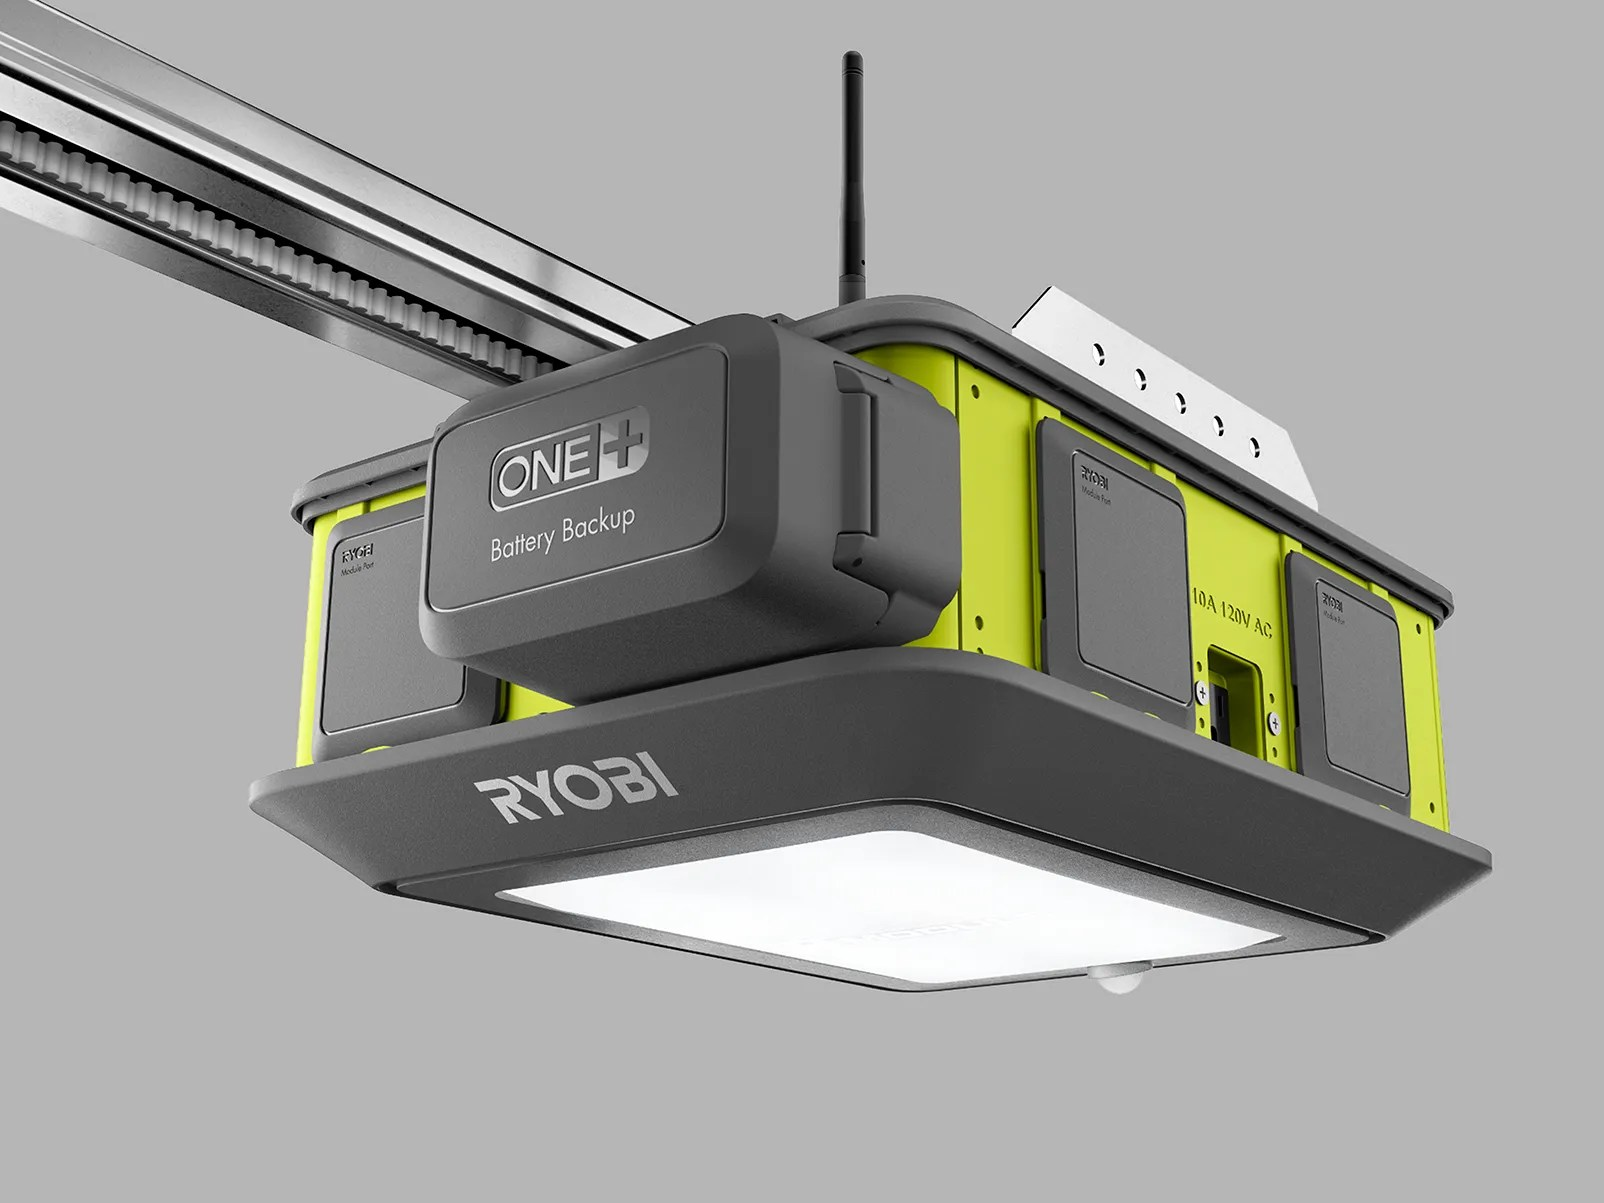 Ryobi Garage Door Fan This Is One Seriously Cool Garage Door Opener Seriously Wired